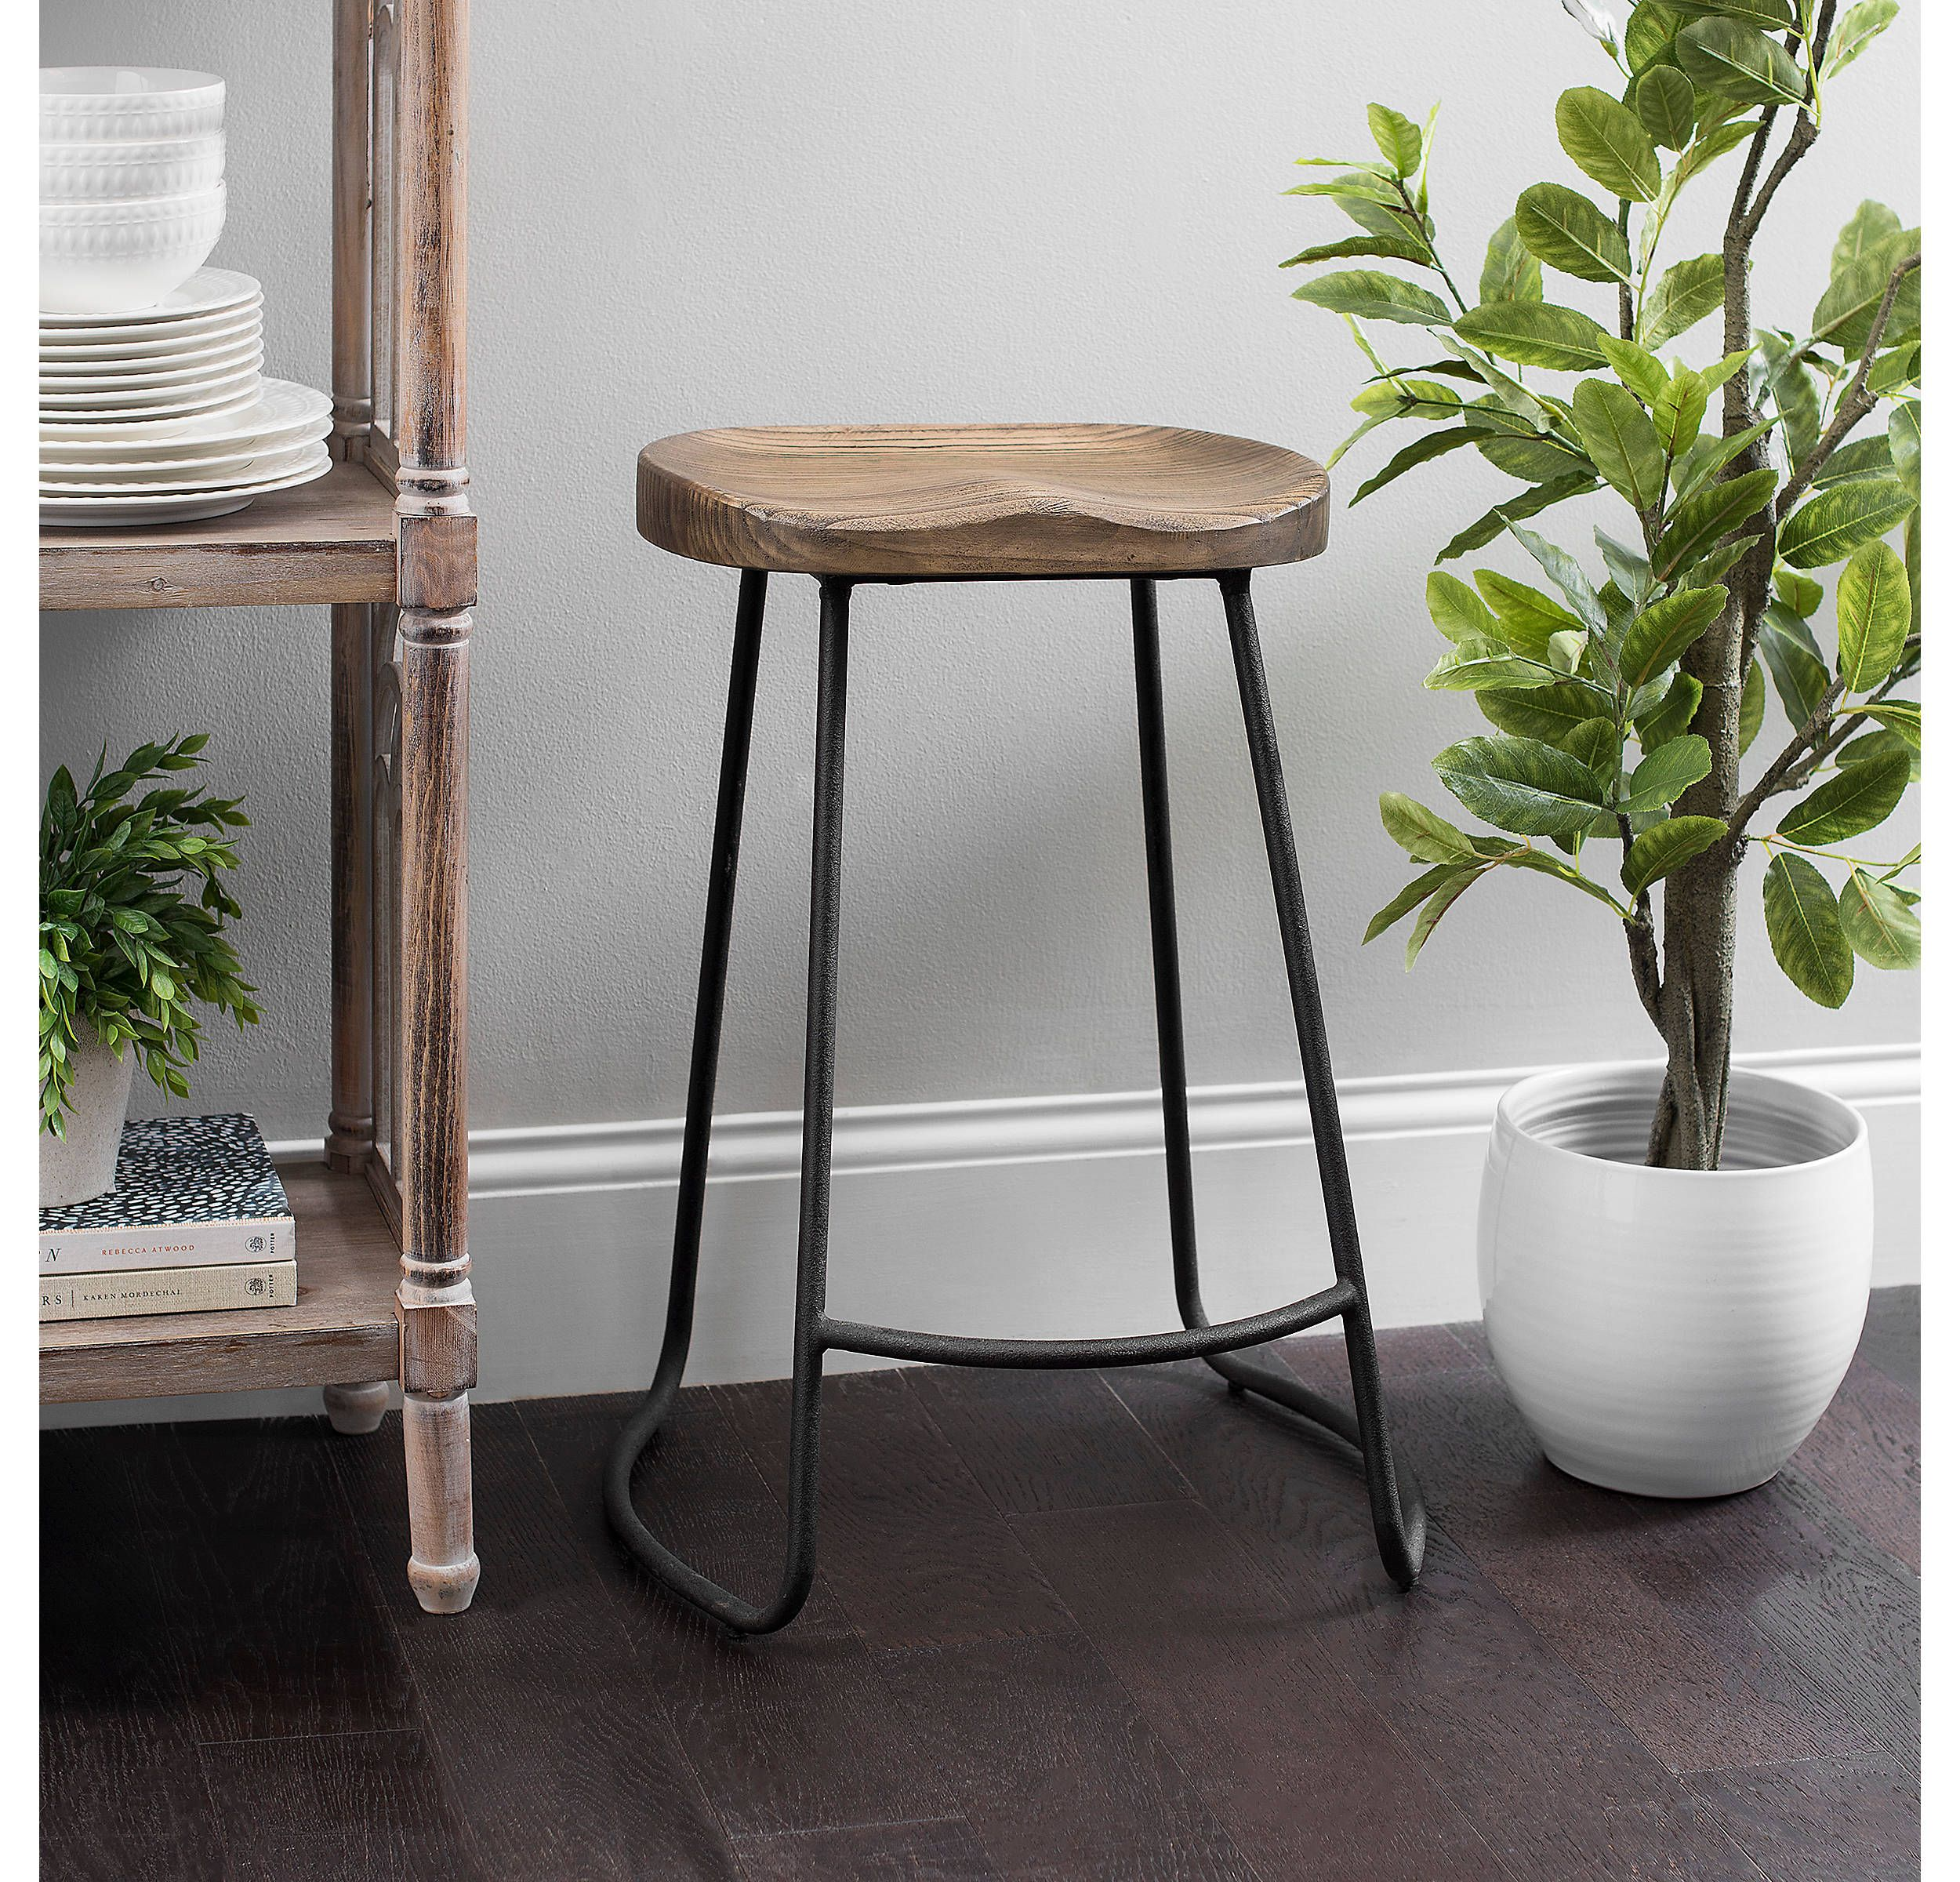 Awe Inspiring Product Details Backless Molded Wood Seat Counter Stool In Gmtry Best Dining Table And Chair Ideas Images Gmtryco